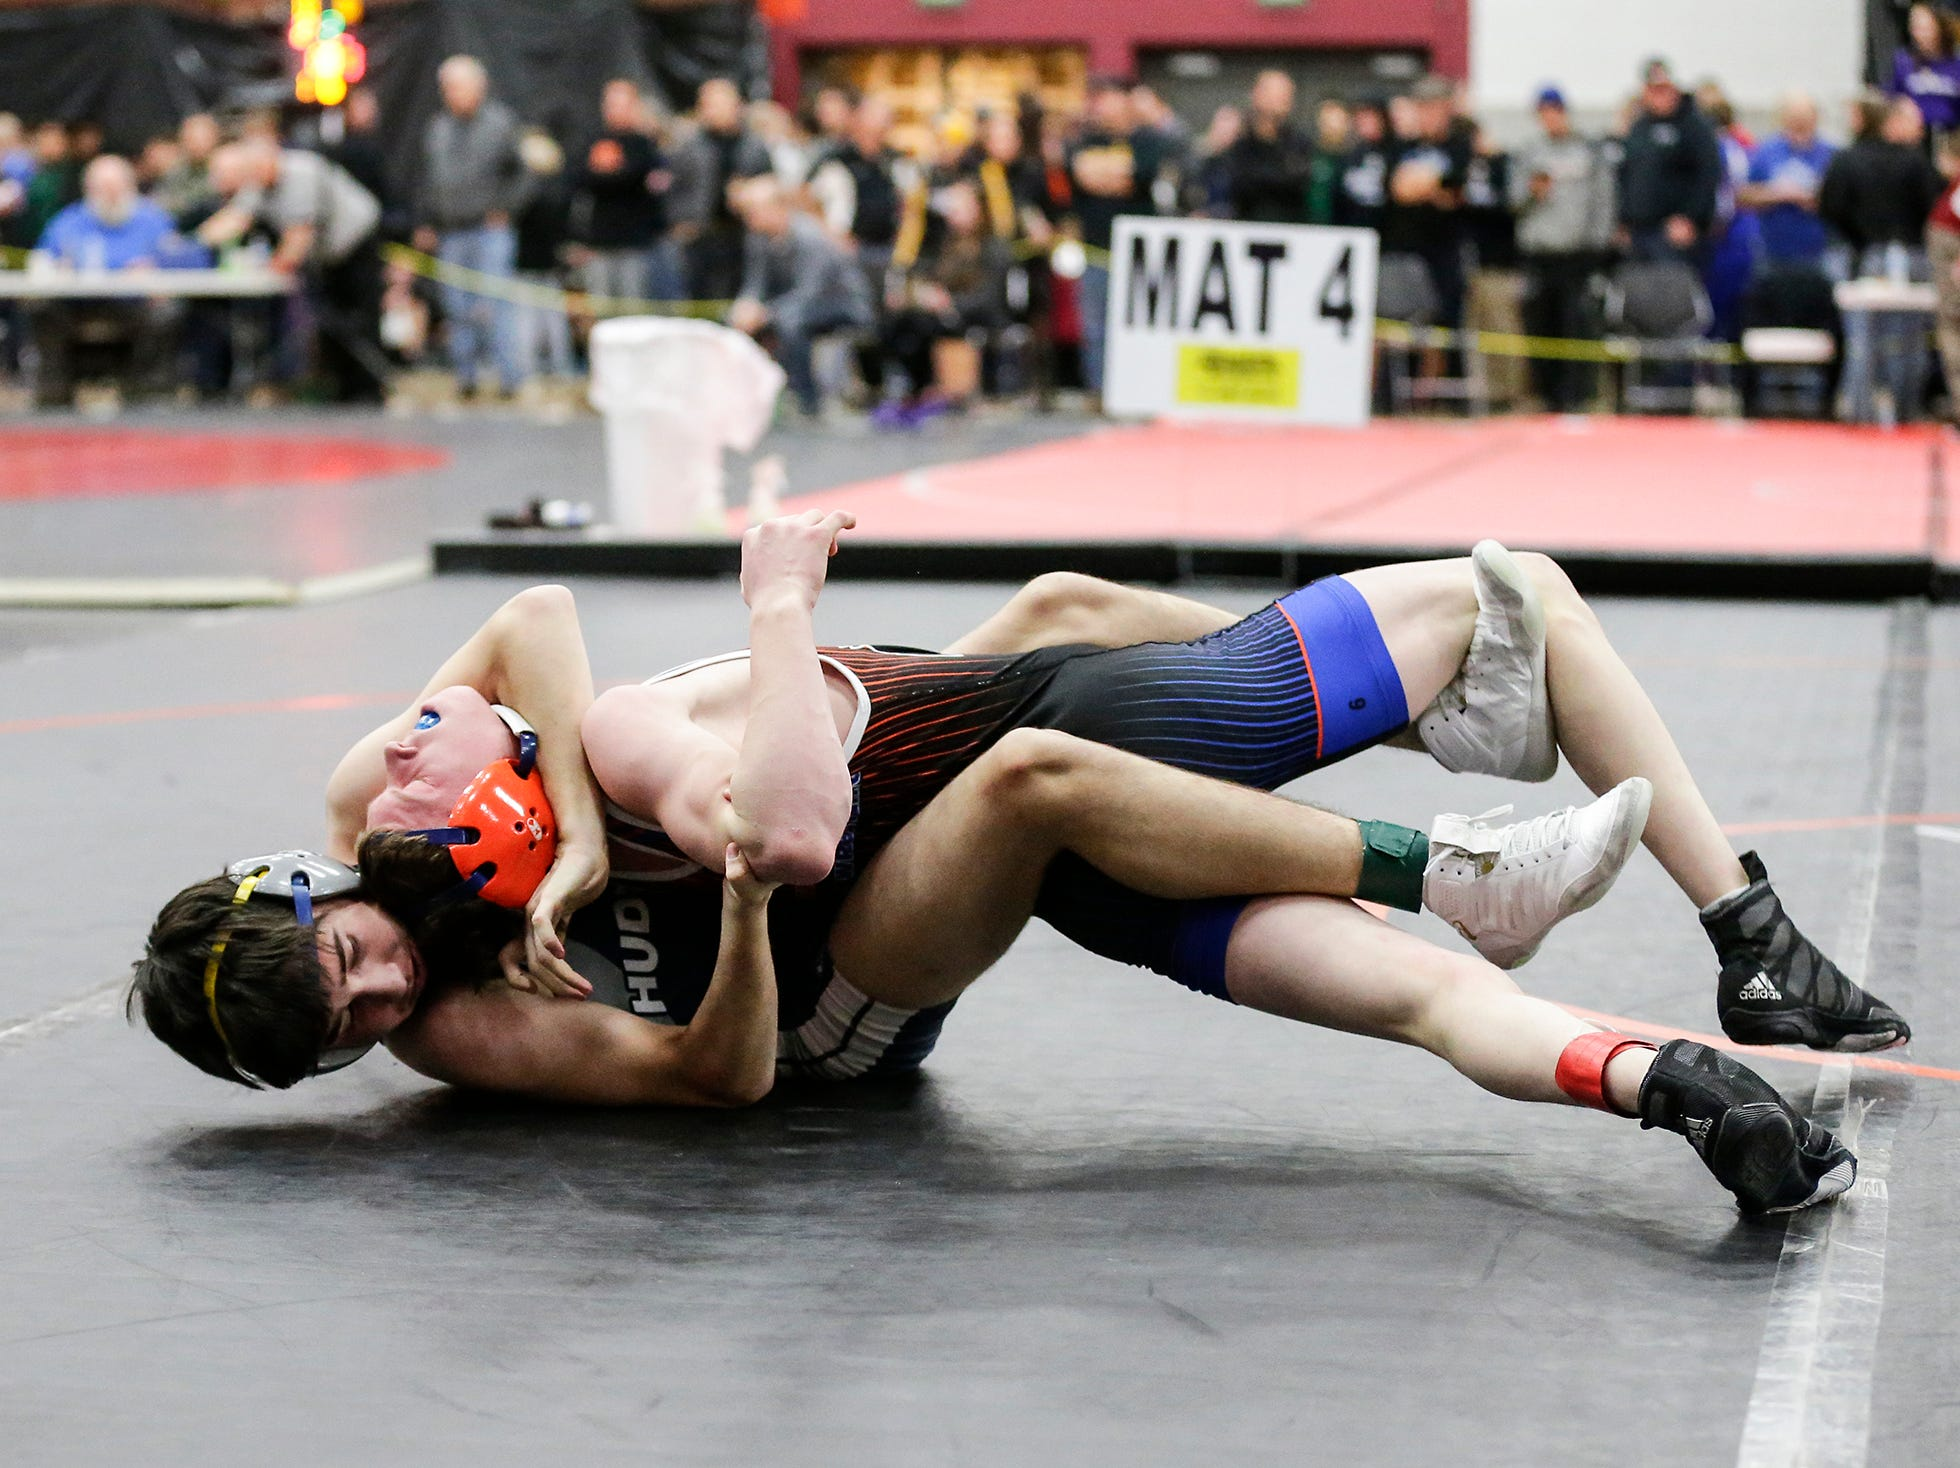 Springs/North Fond du Lac High School wrestling's Zack Williams-Romero wrestles A J Henn of Hudson High School Saturday, December 15, 2018 in the 106 pound weight class during the Fond du Lac Cardinal wrestling invitational in Fond du Lac, Wisconsin. Henn won the match 9-3. Doug Raflik/USA TODAY NETWORK-Wisconsin